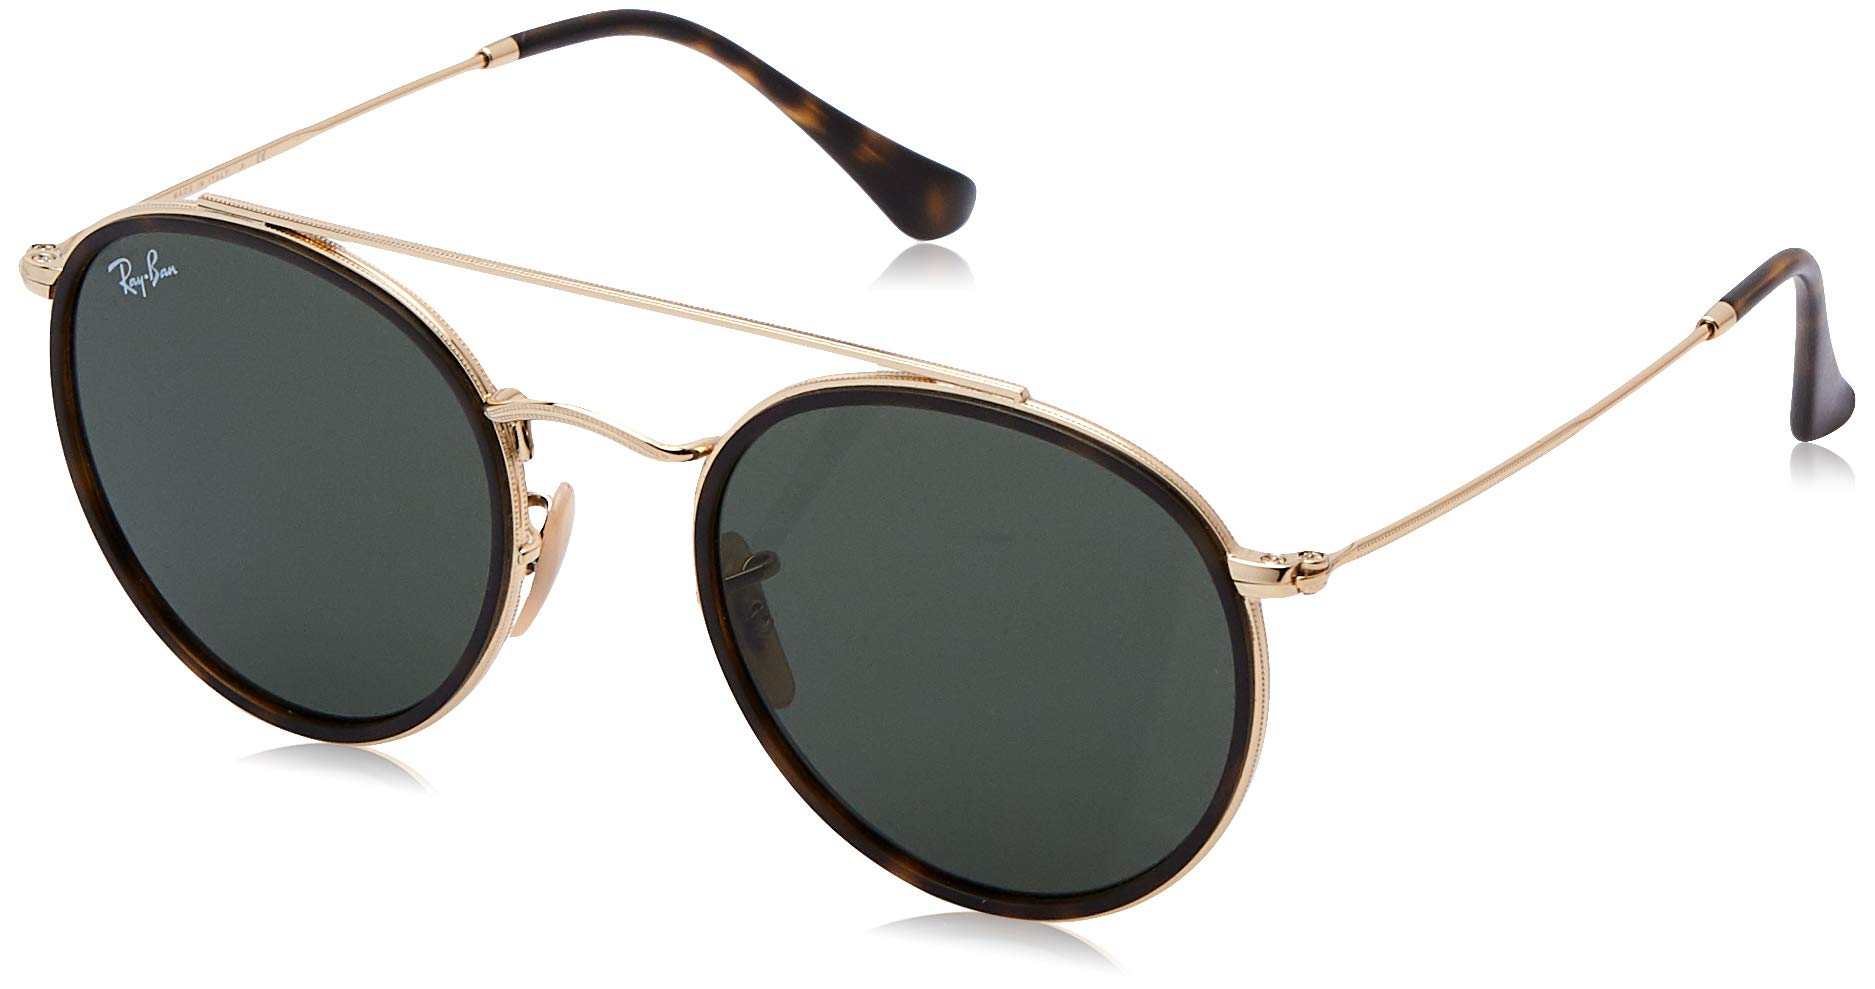 RAY-BAN RB3647N Round Double Bridge Sunglasses, Gold/Green, 51 mm by RAY-BAN